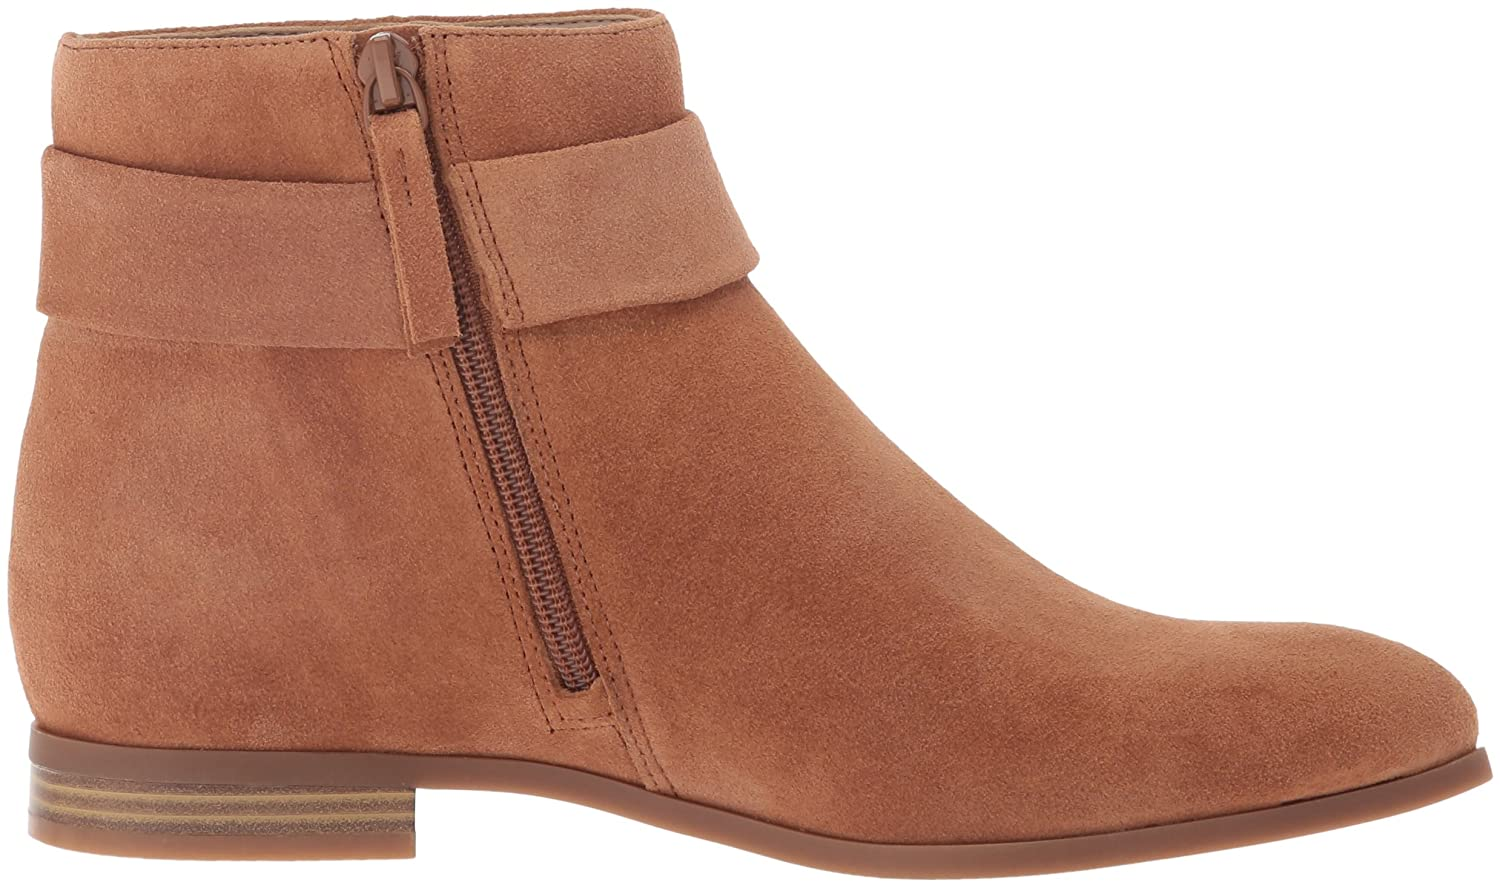 Nine West Women's Objective Suede Boot B01EZQ0A4K 7.5 B(M) US|Natural